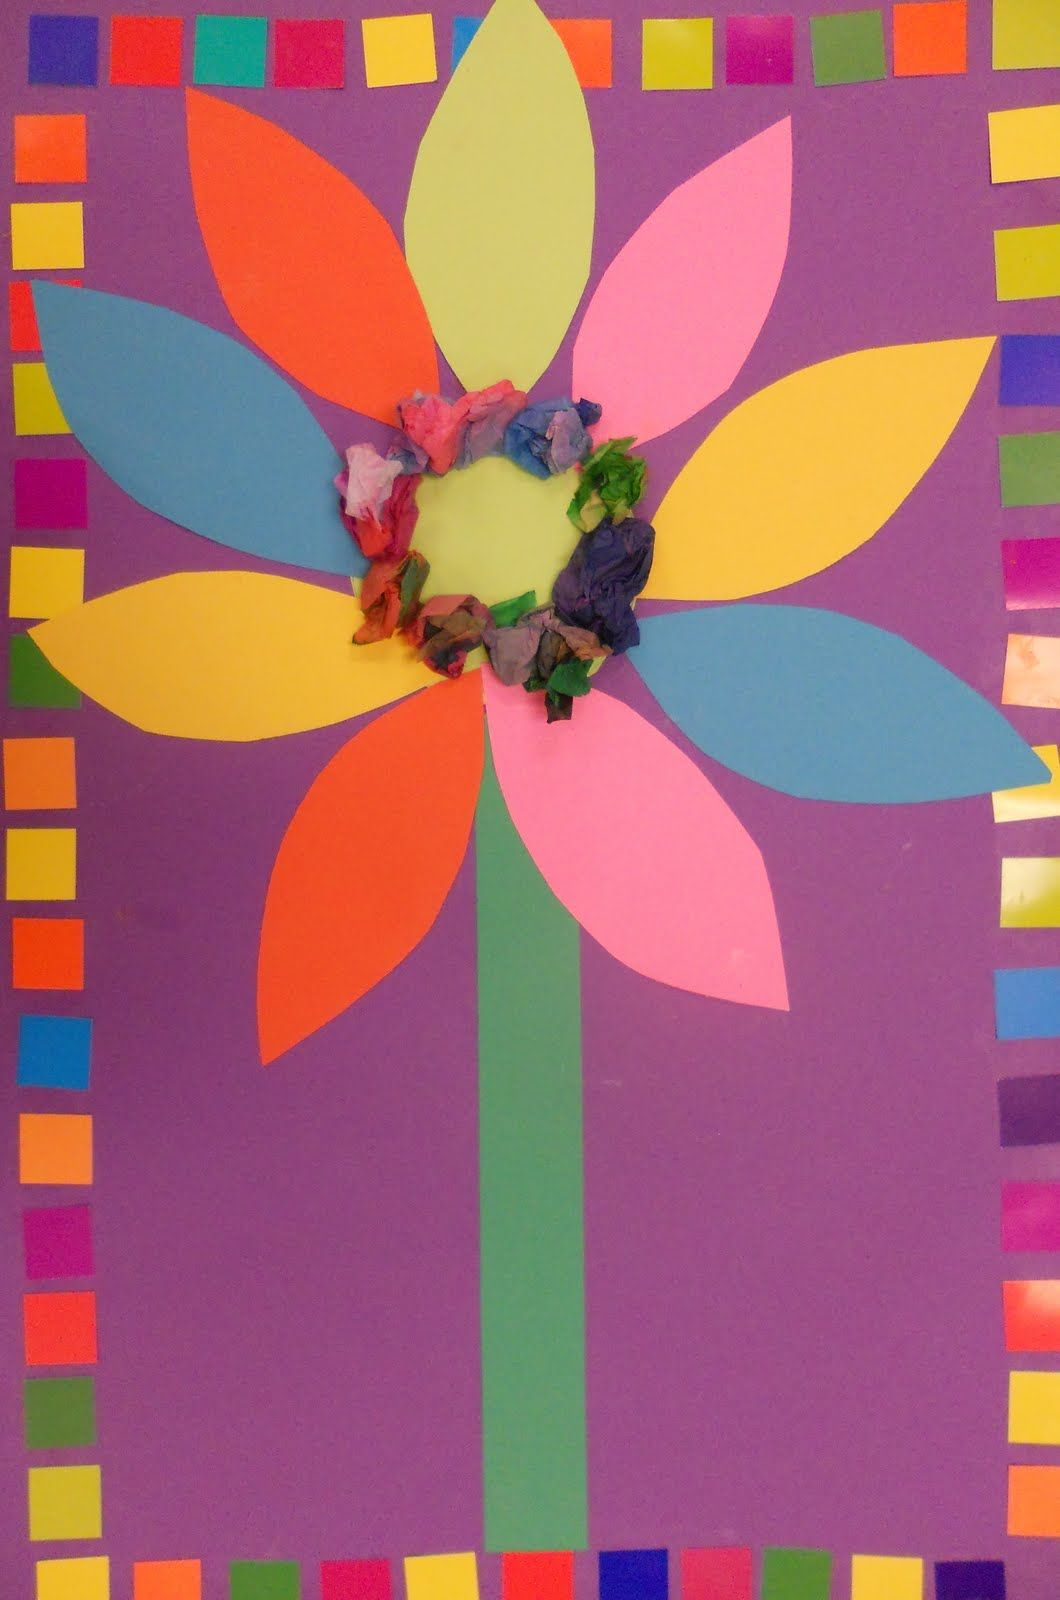 Plants arts and crafts - Find This Pin And More On Primary Art